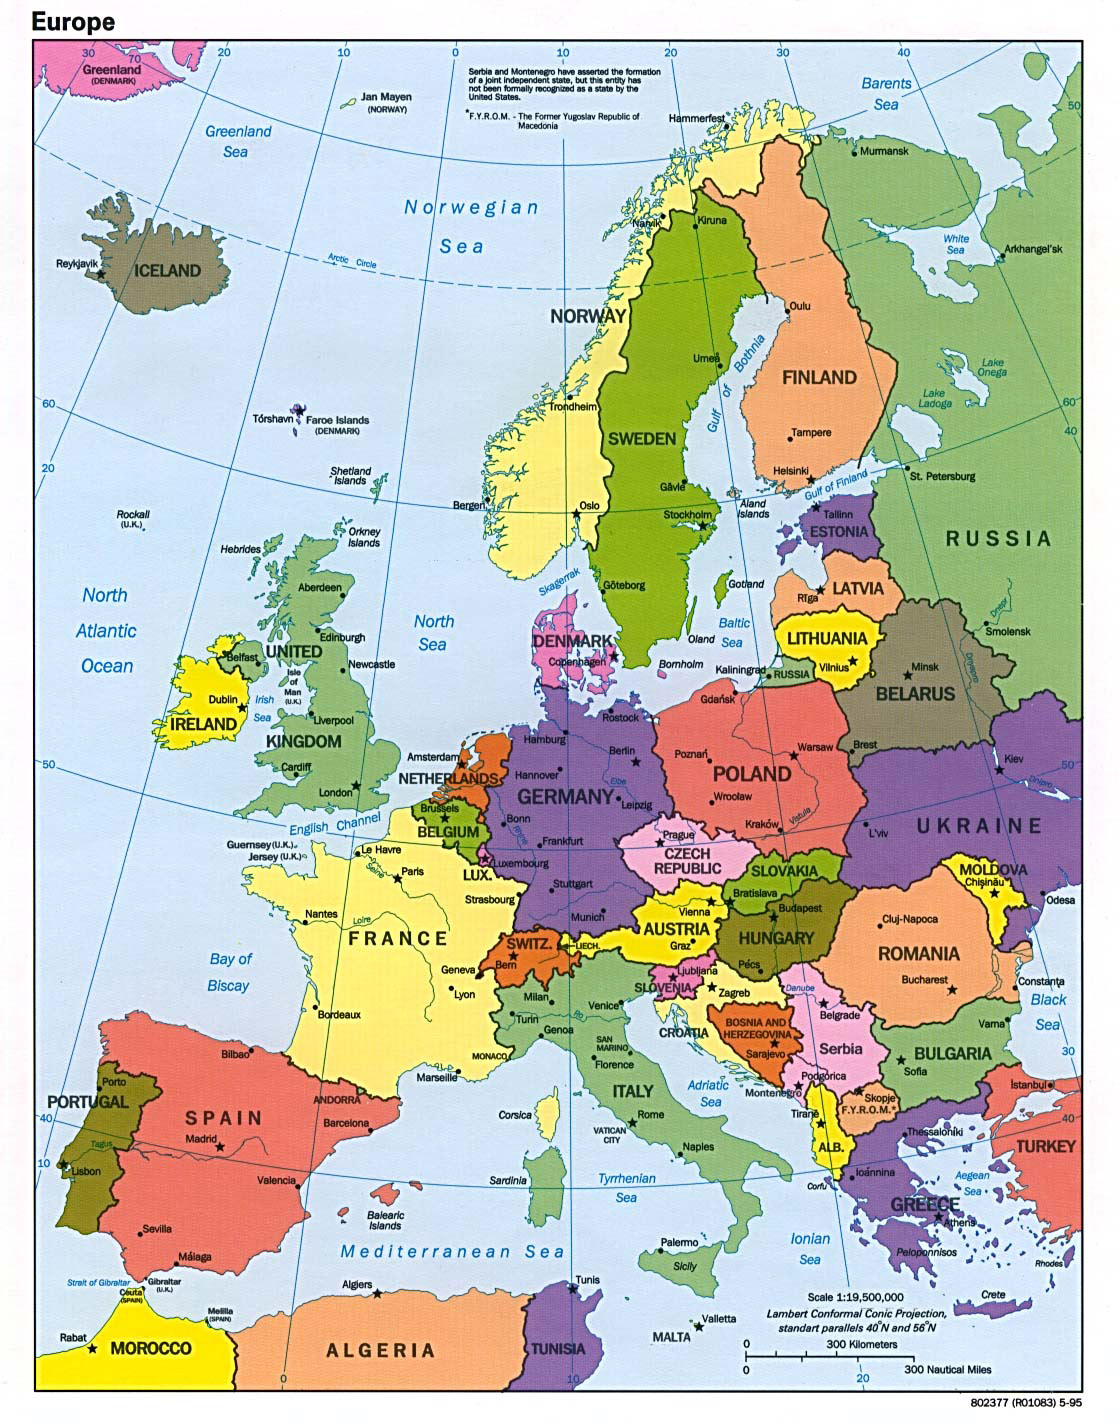 Map Of Europe With Major Cities Detailed political map of Europe with major cities   1995 | Europe